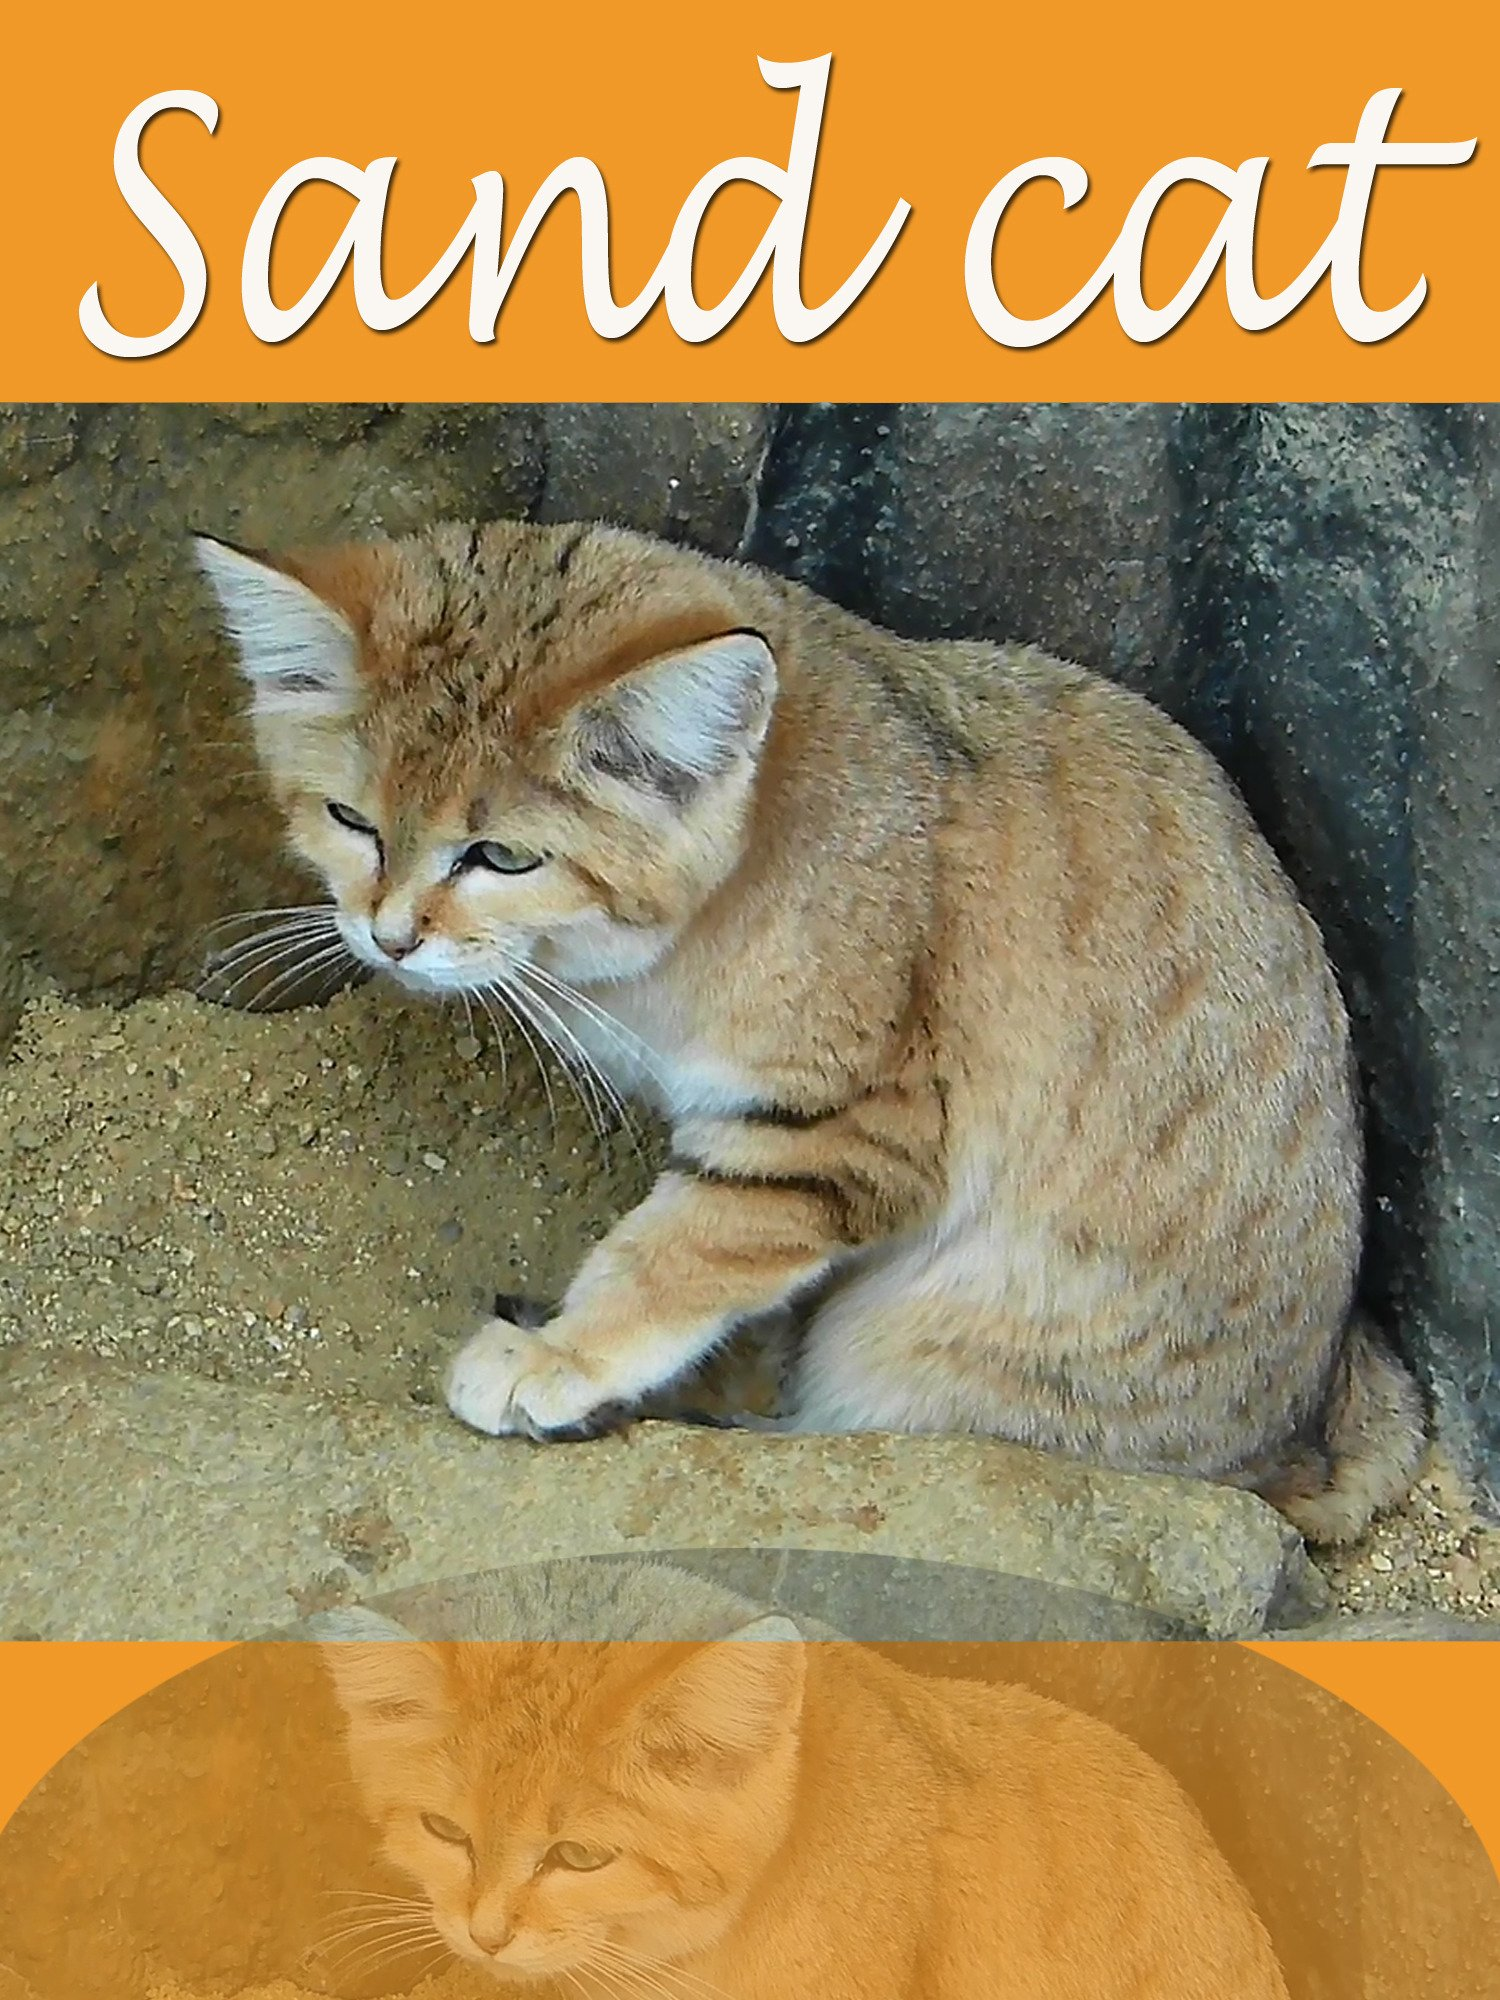 Clip: Sand cat on Amazon Prime Instant Video UK